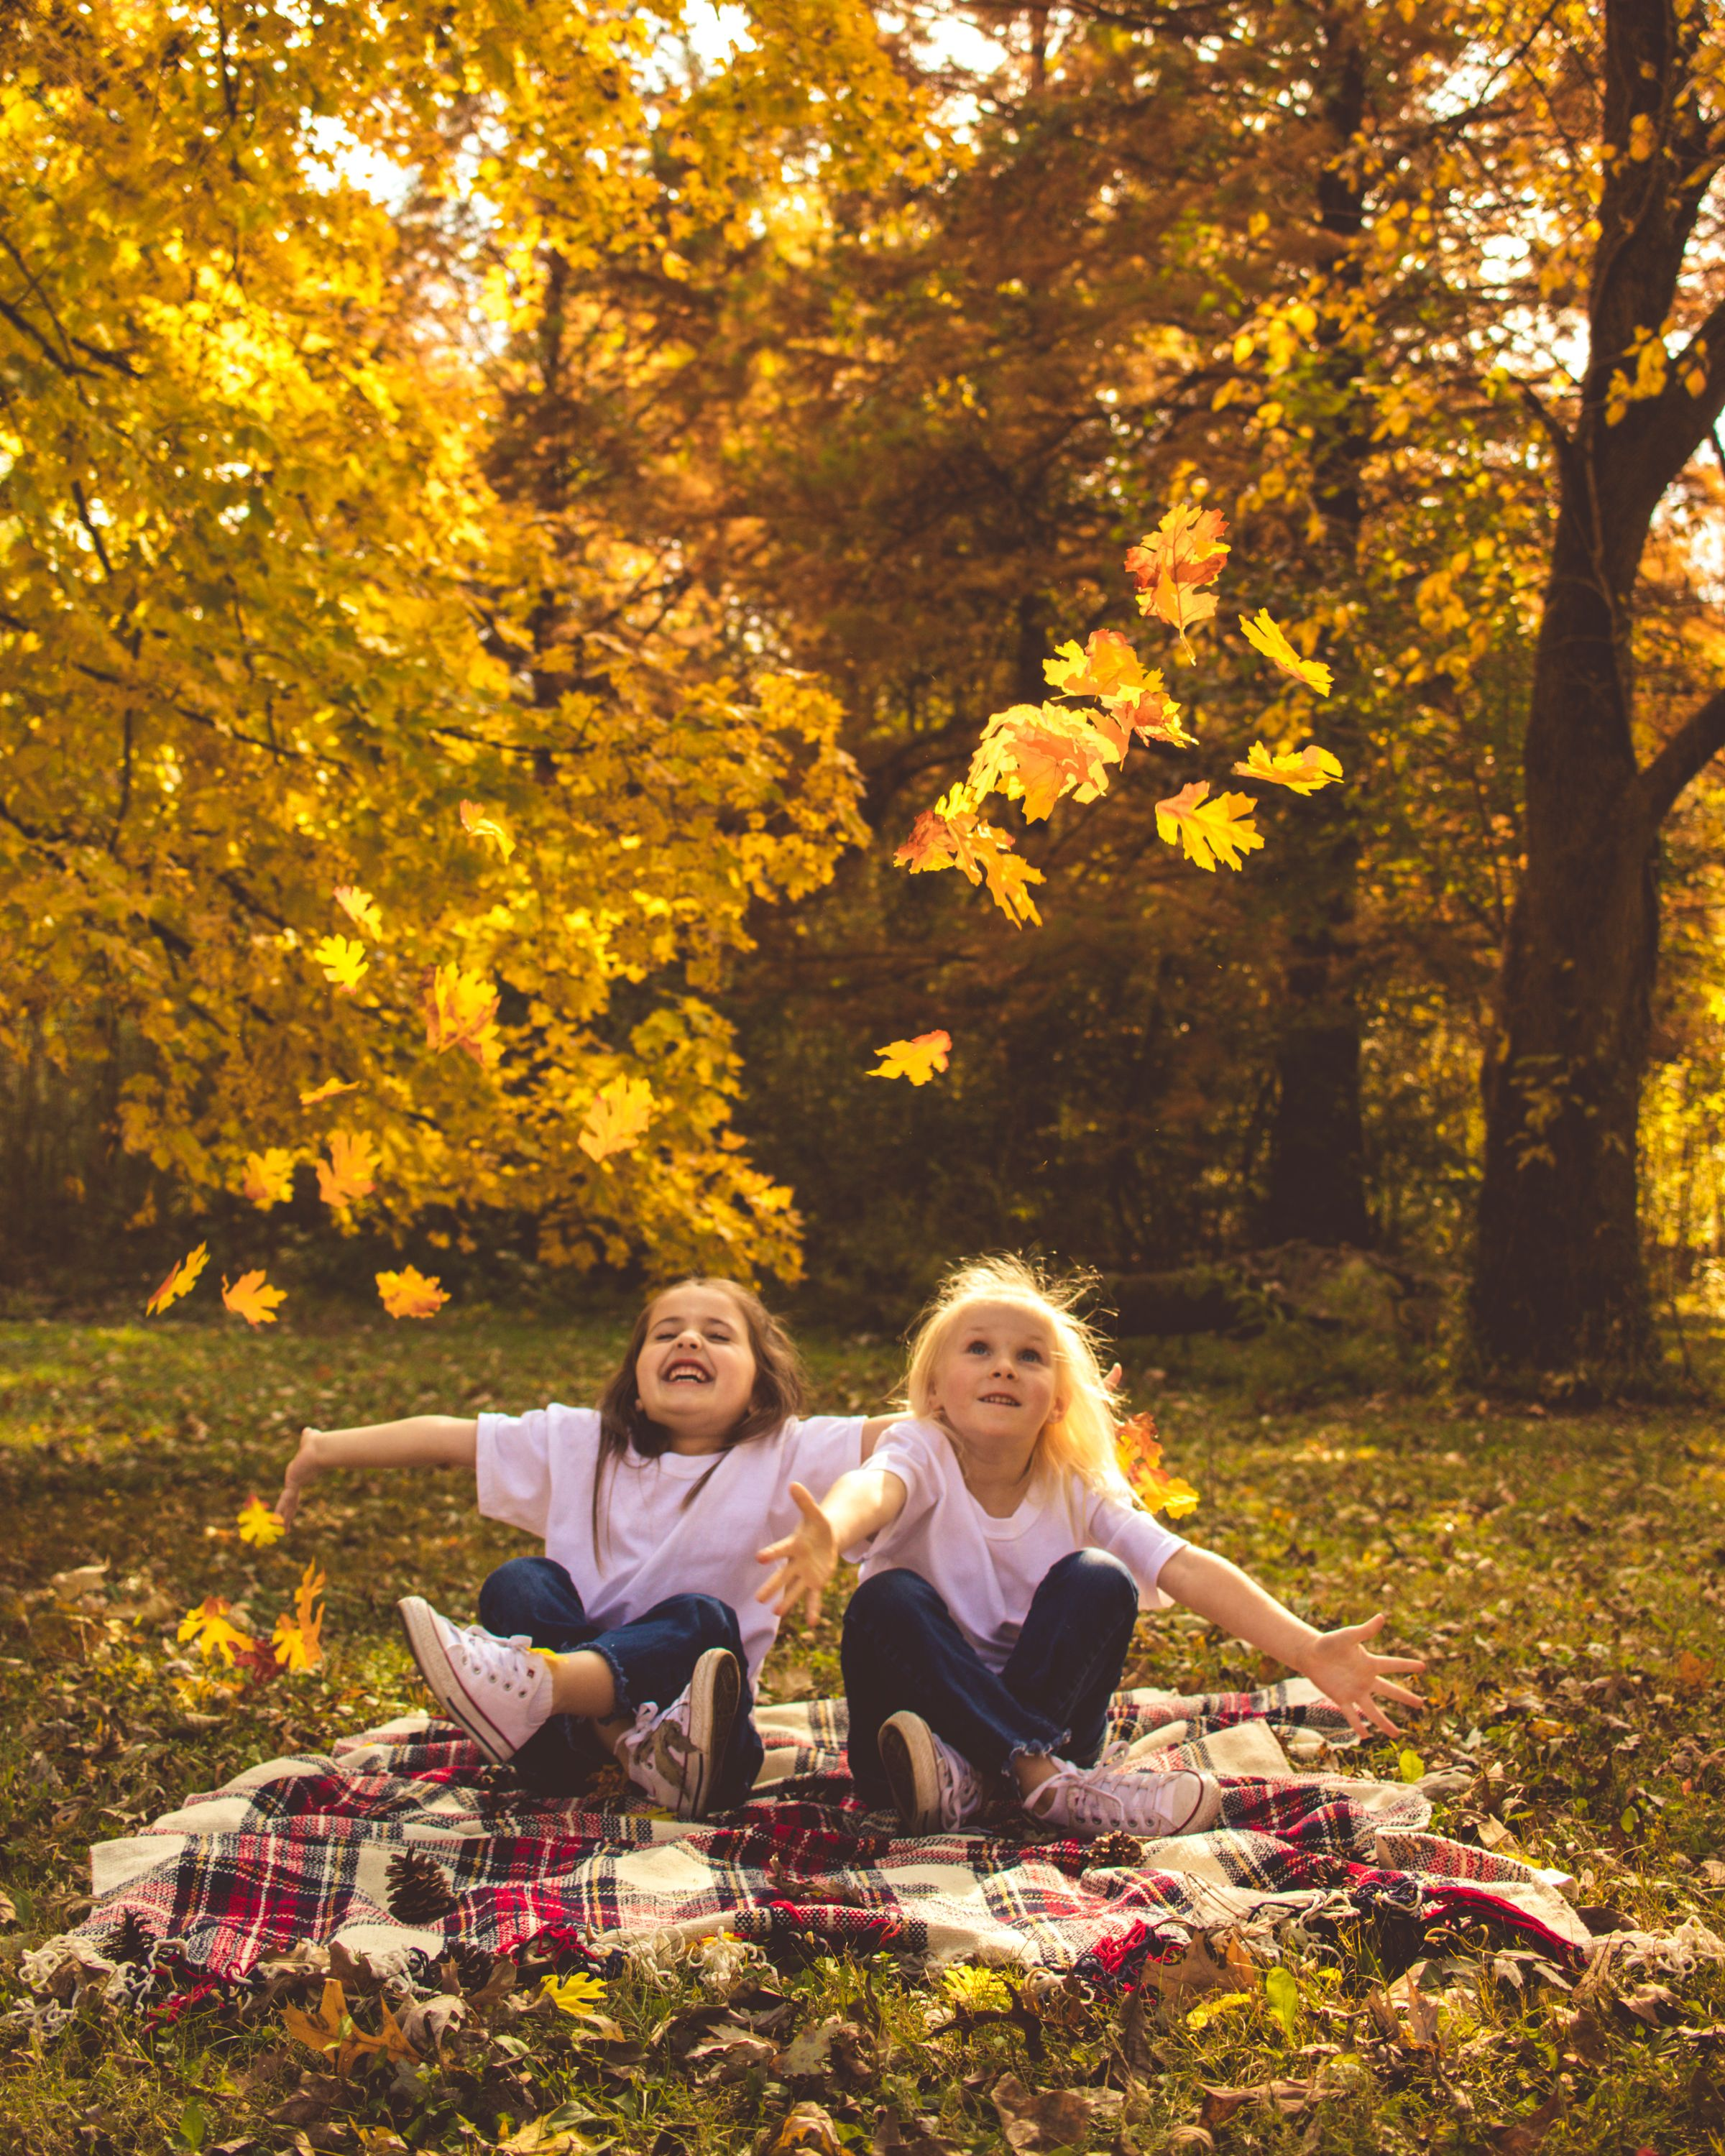 Fall Best Friend Photoshoot, Best Friend Photos, Friend